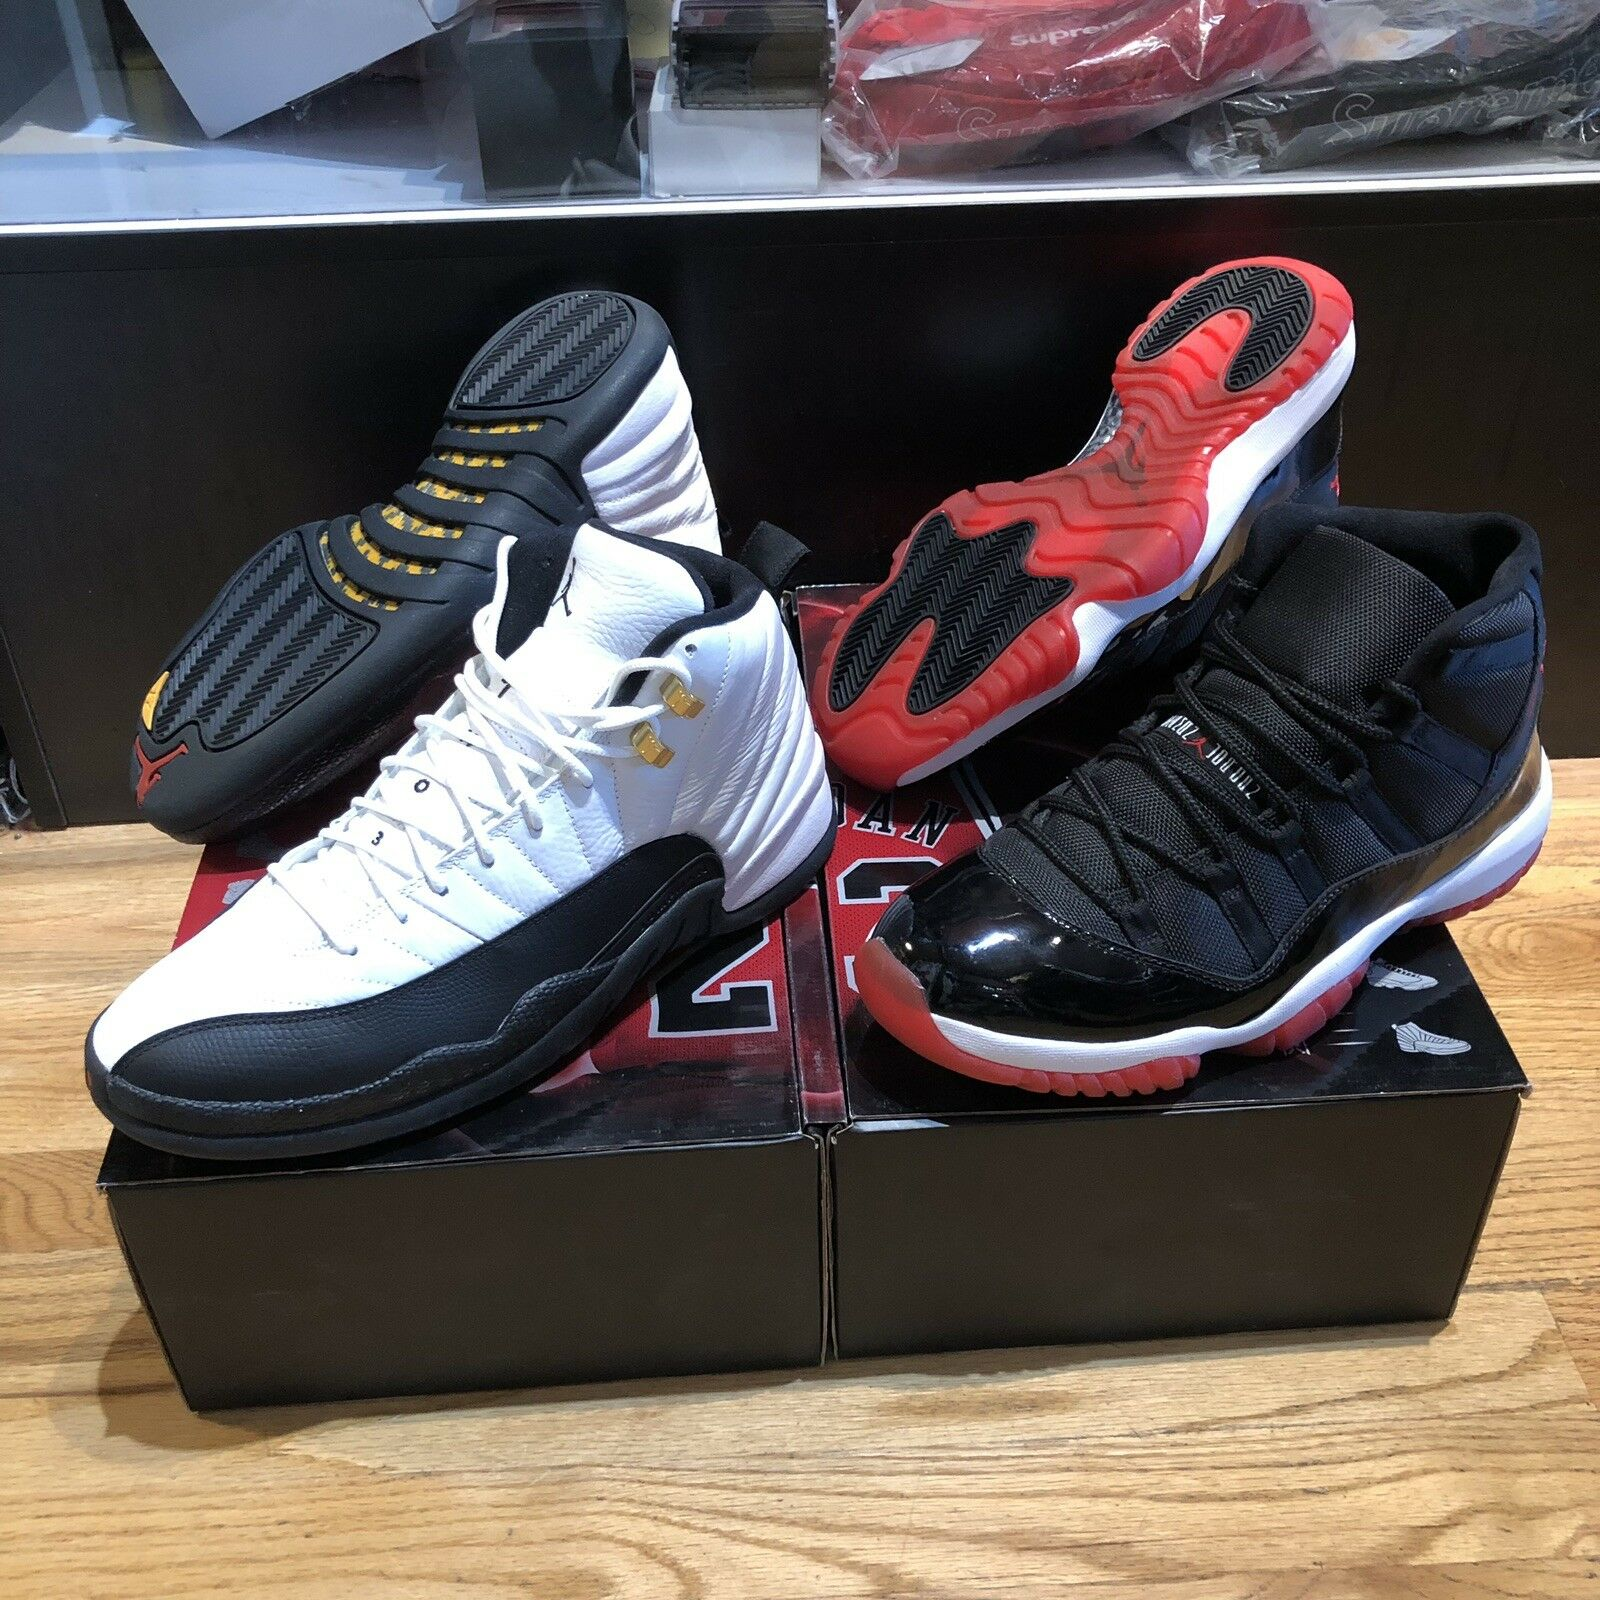 Air Jordan Collezione Countdown Pack CDP 11 12 Bred XI Taxi XII Mens Size 11 DS